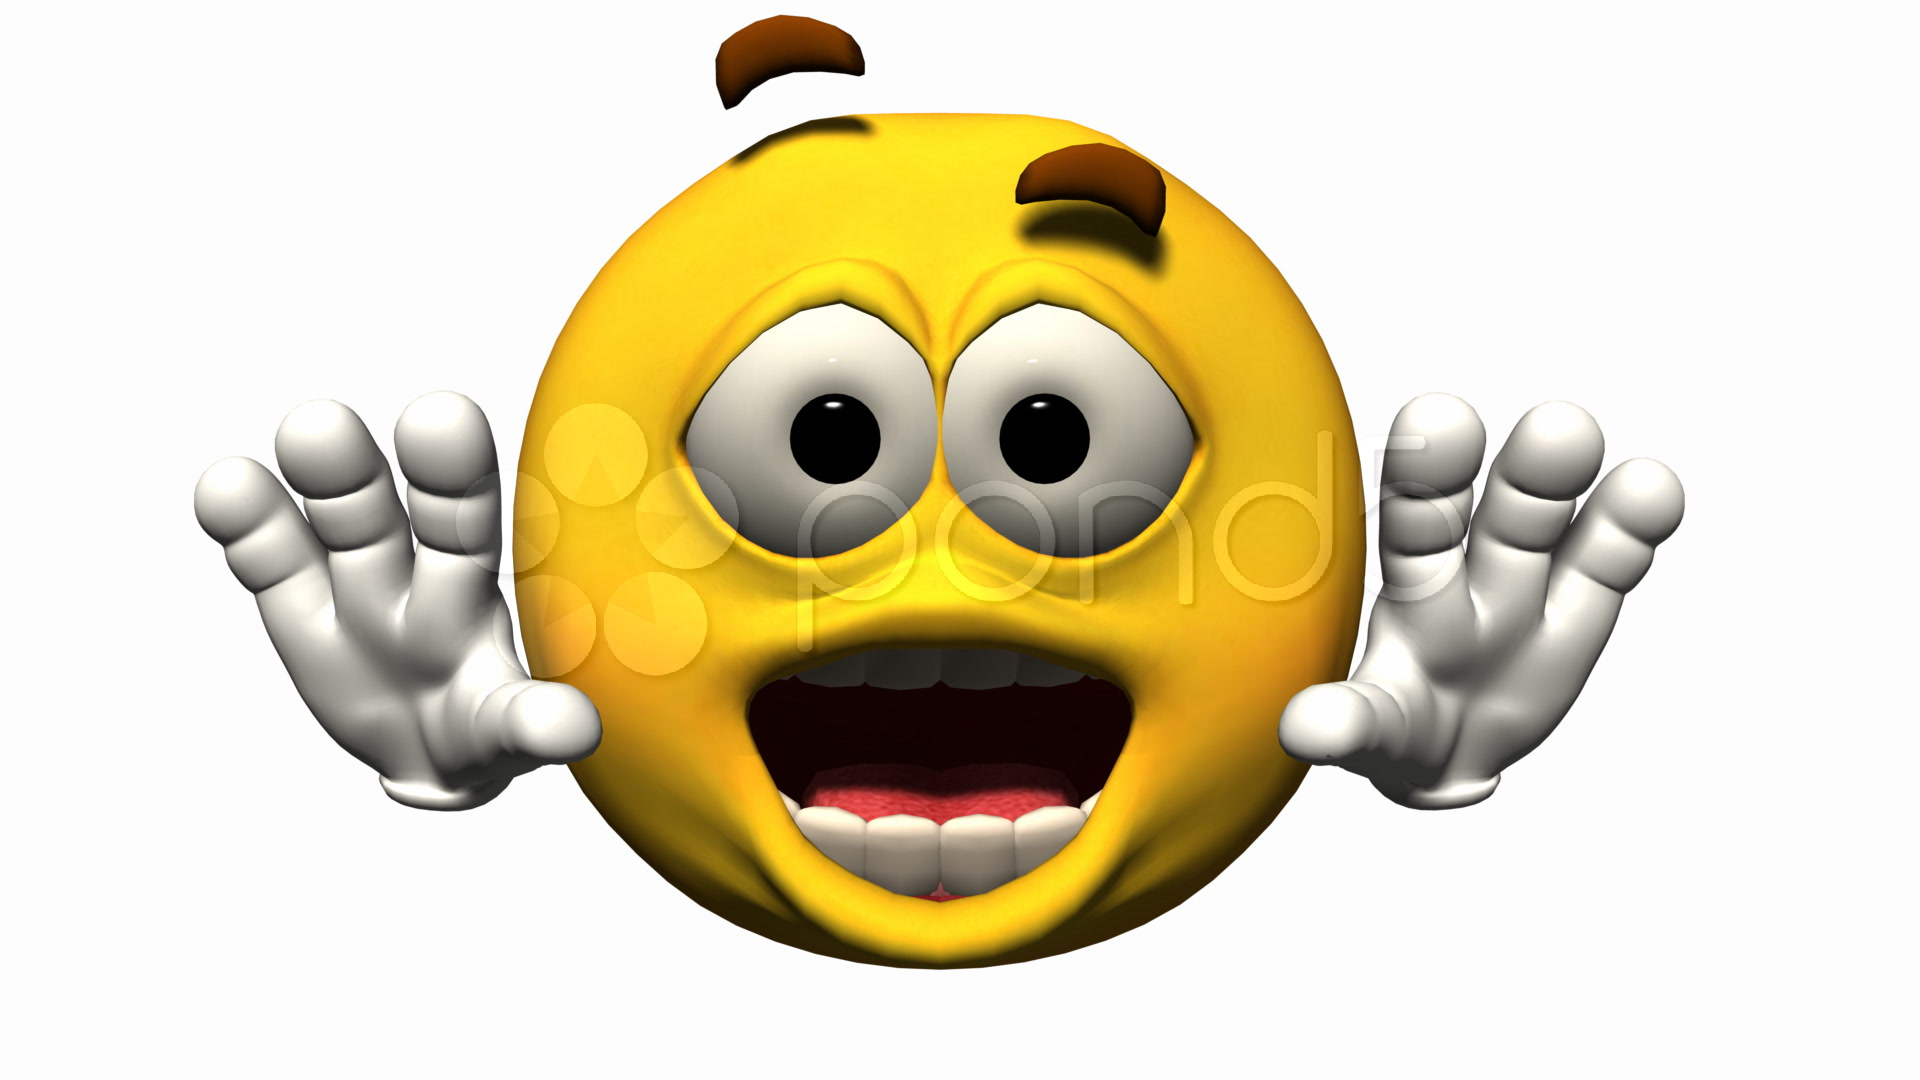 8 Animated Moving Emoticons Free Images - Free Animated ...